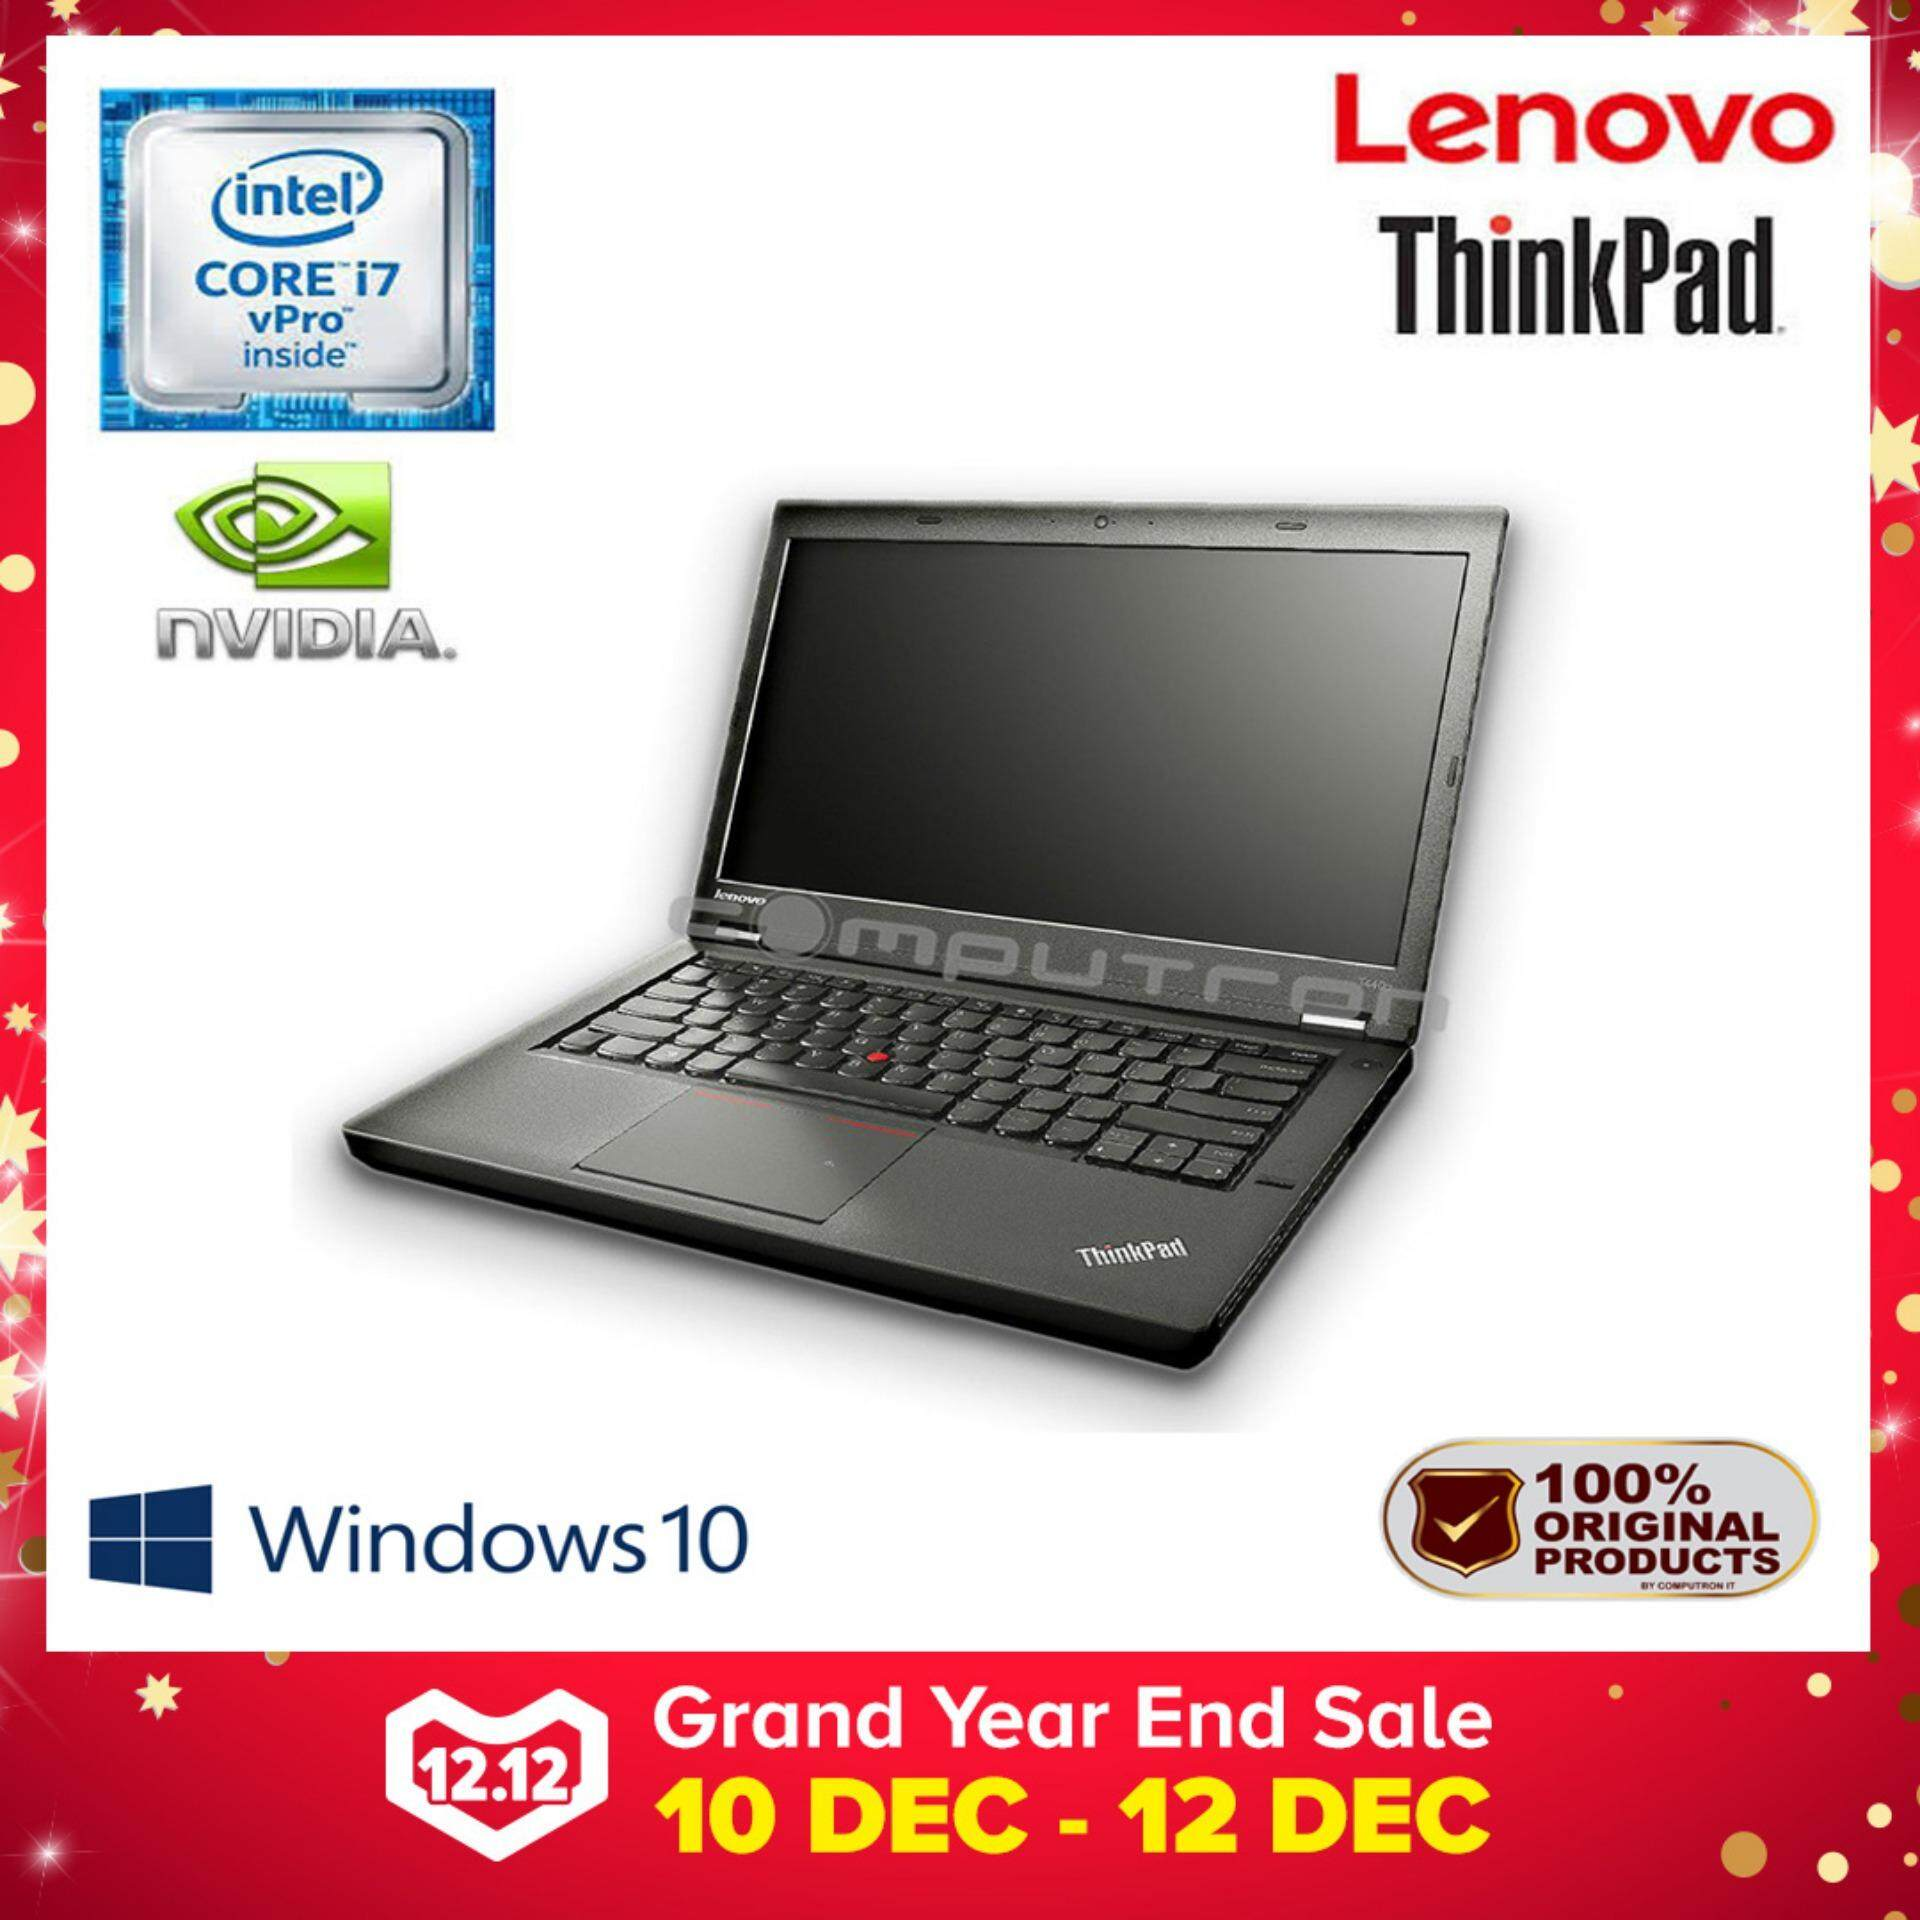 LENOVO THINKPAD T440P CORE I7 V-PRO /8GB/1TB/ NVIDIA GEFORCE GT730 [ 1 YEAR WARRANTY ] Malaysia